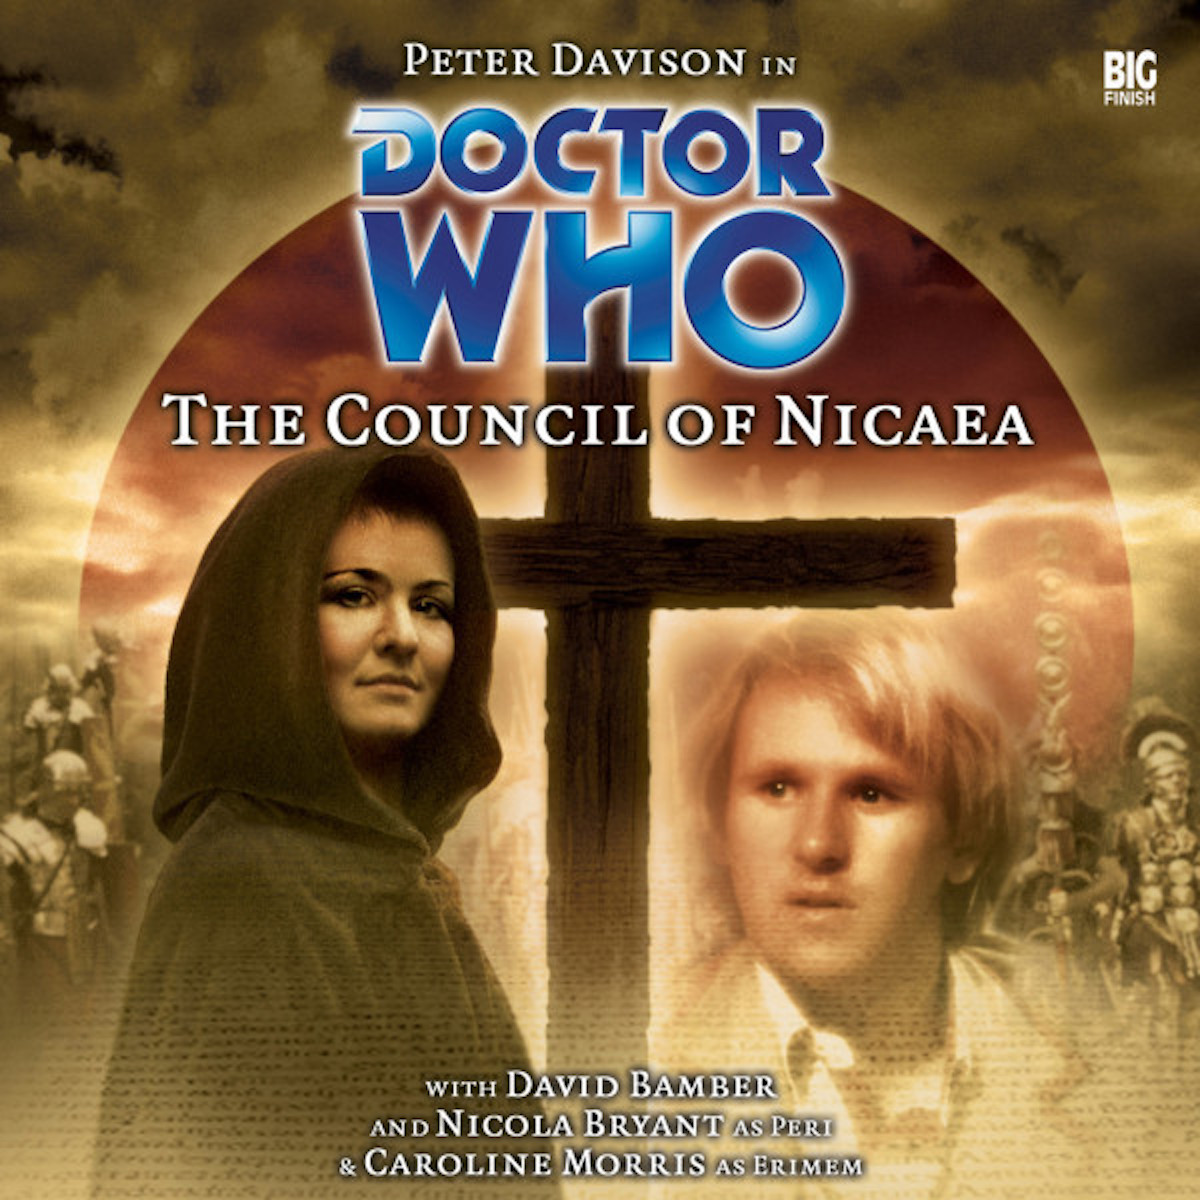 The Council of Nicaea